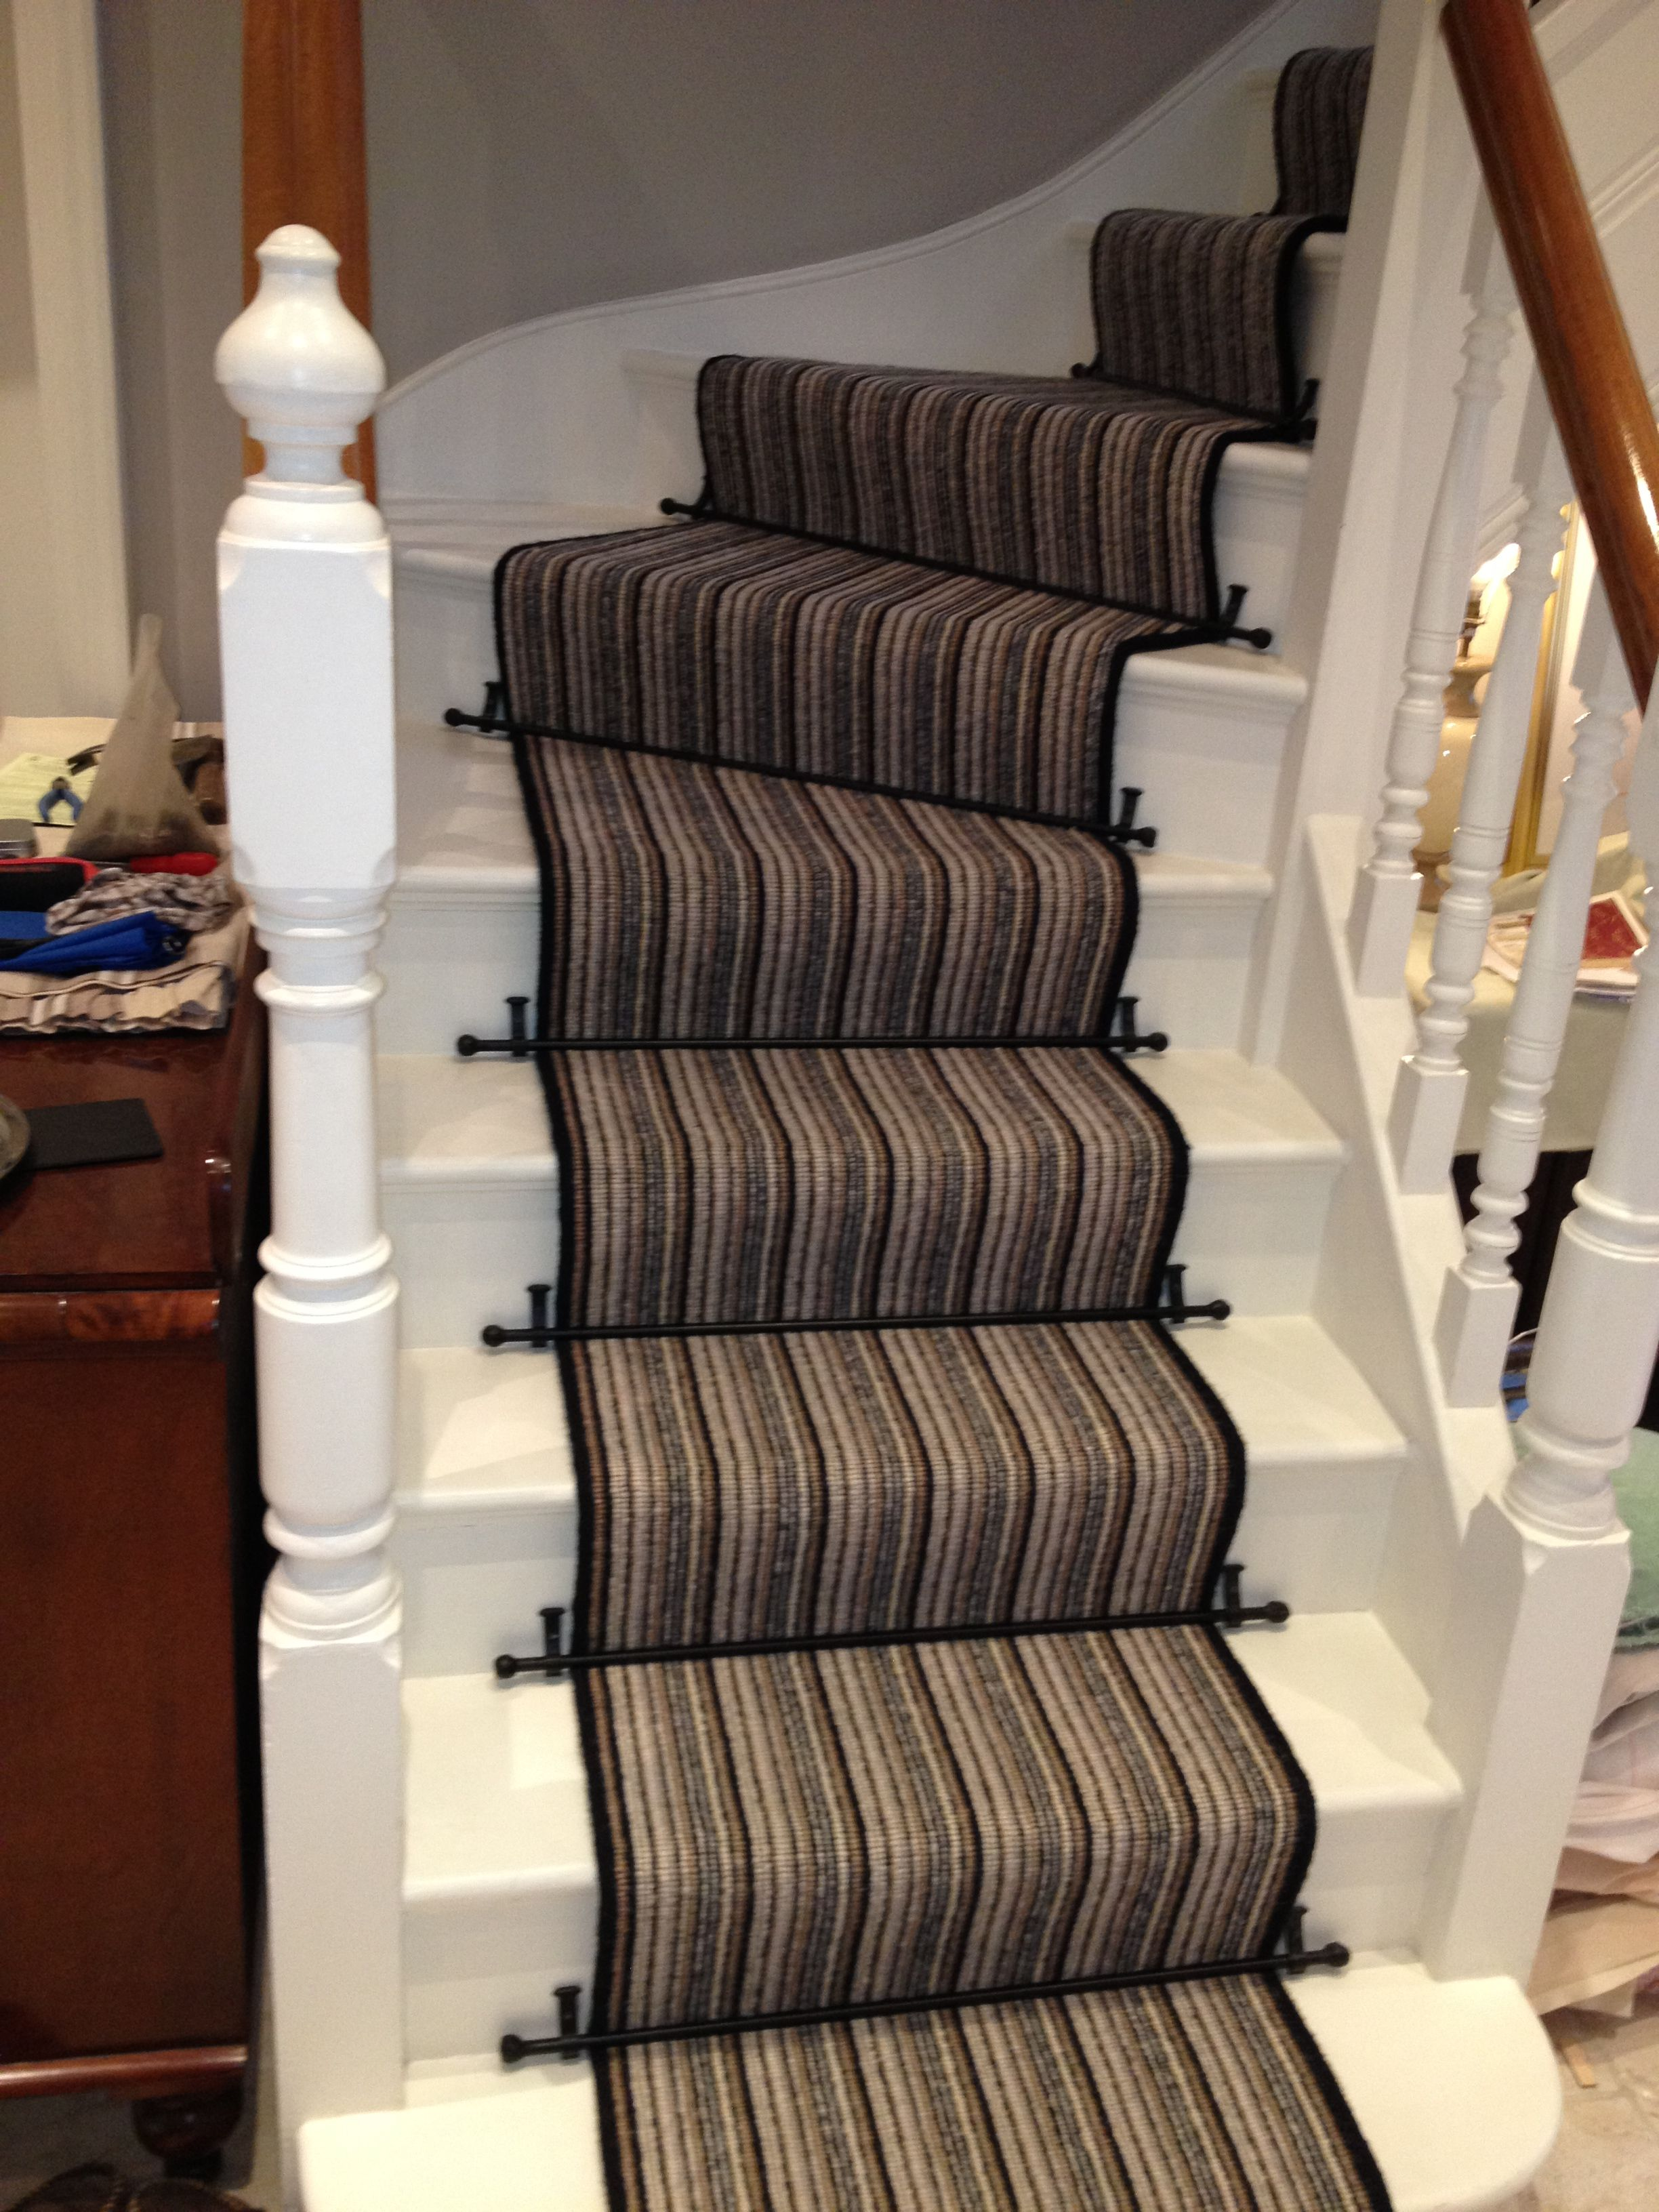 Amazing Stair Rods   Google Search. Stair Carpet RunnerStair ...